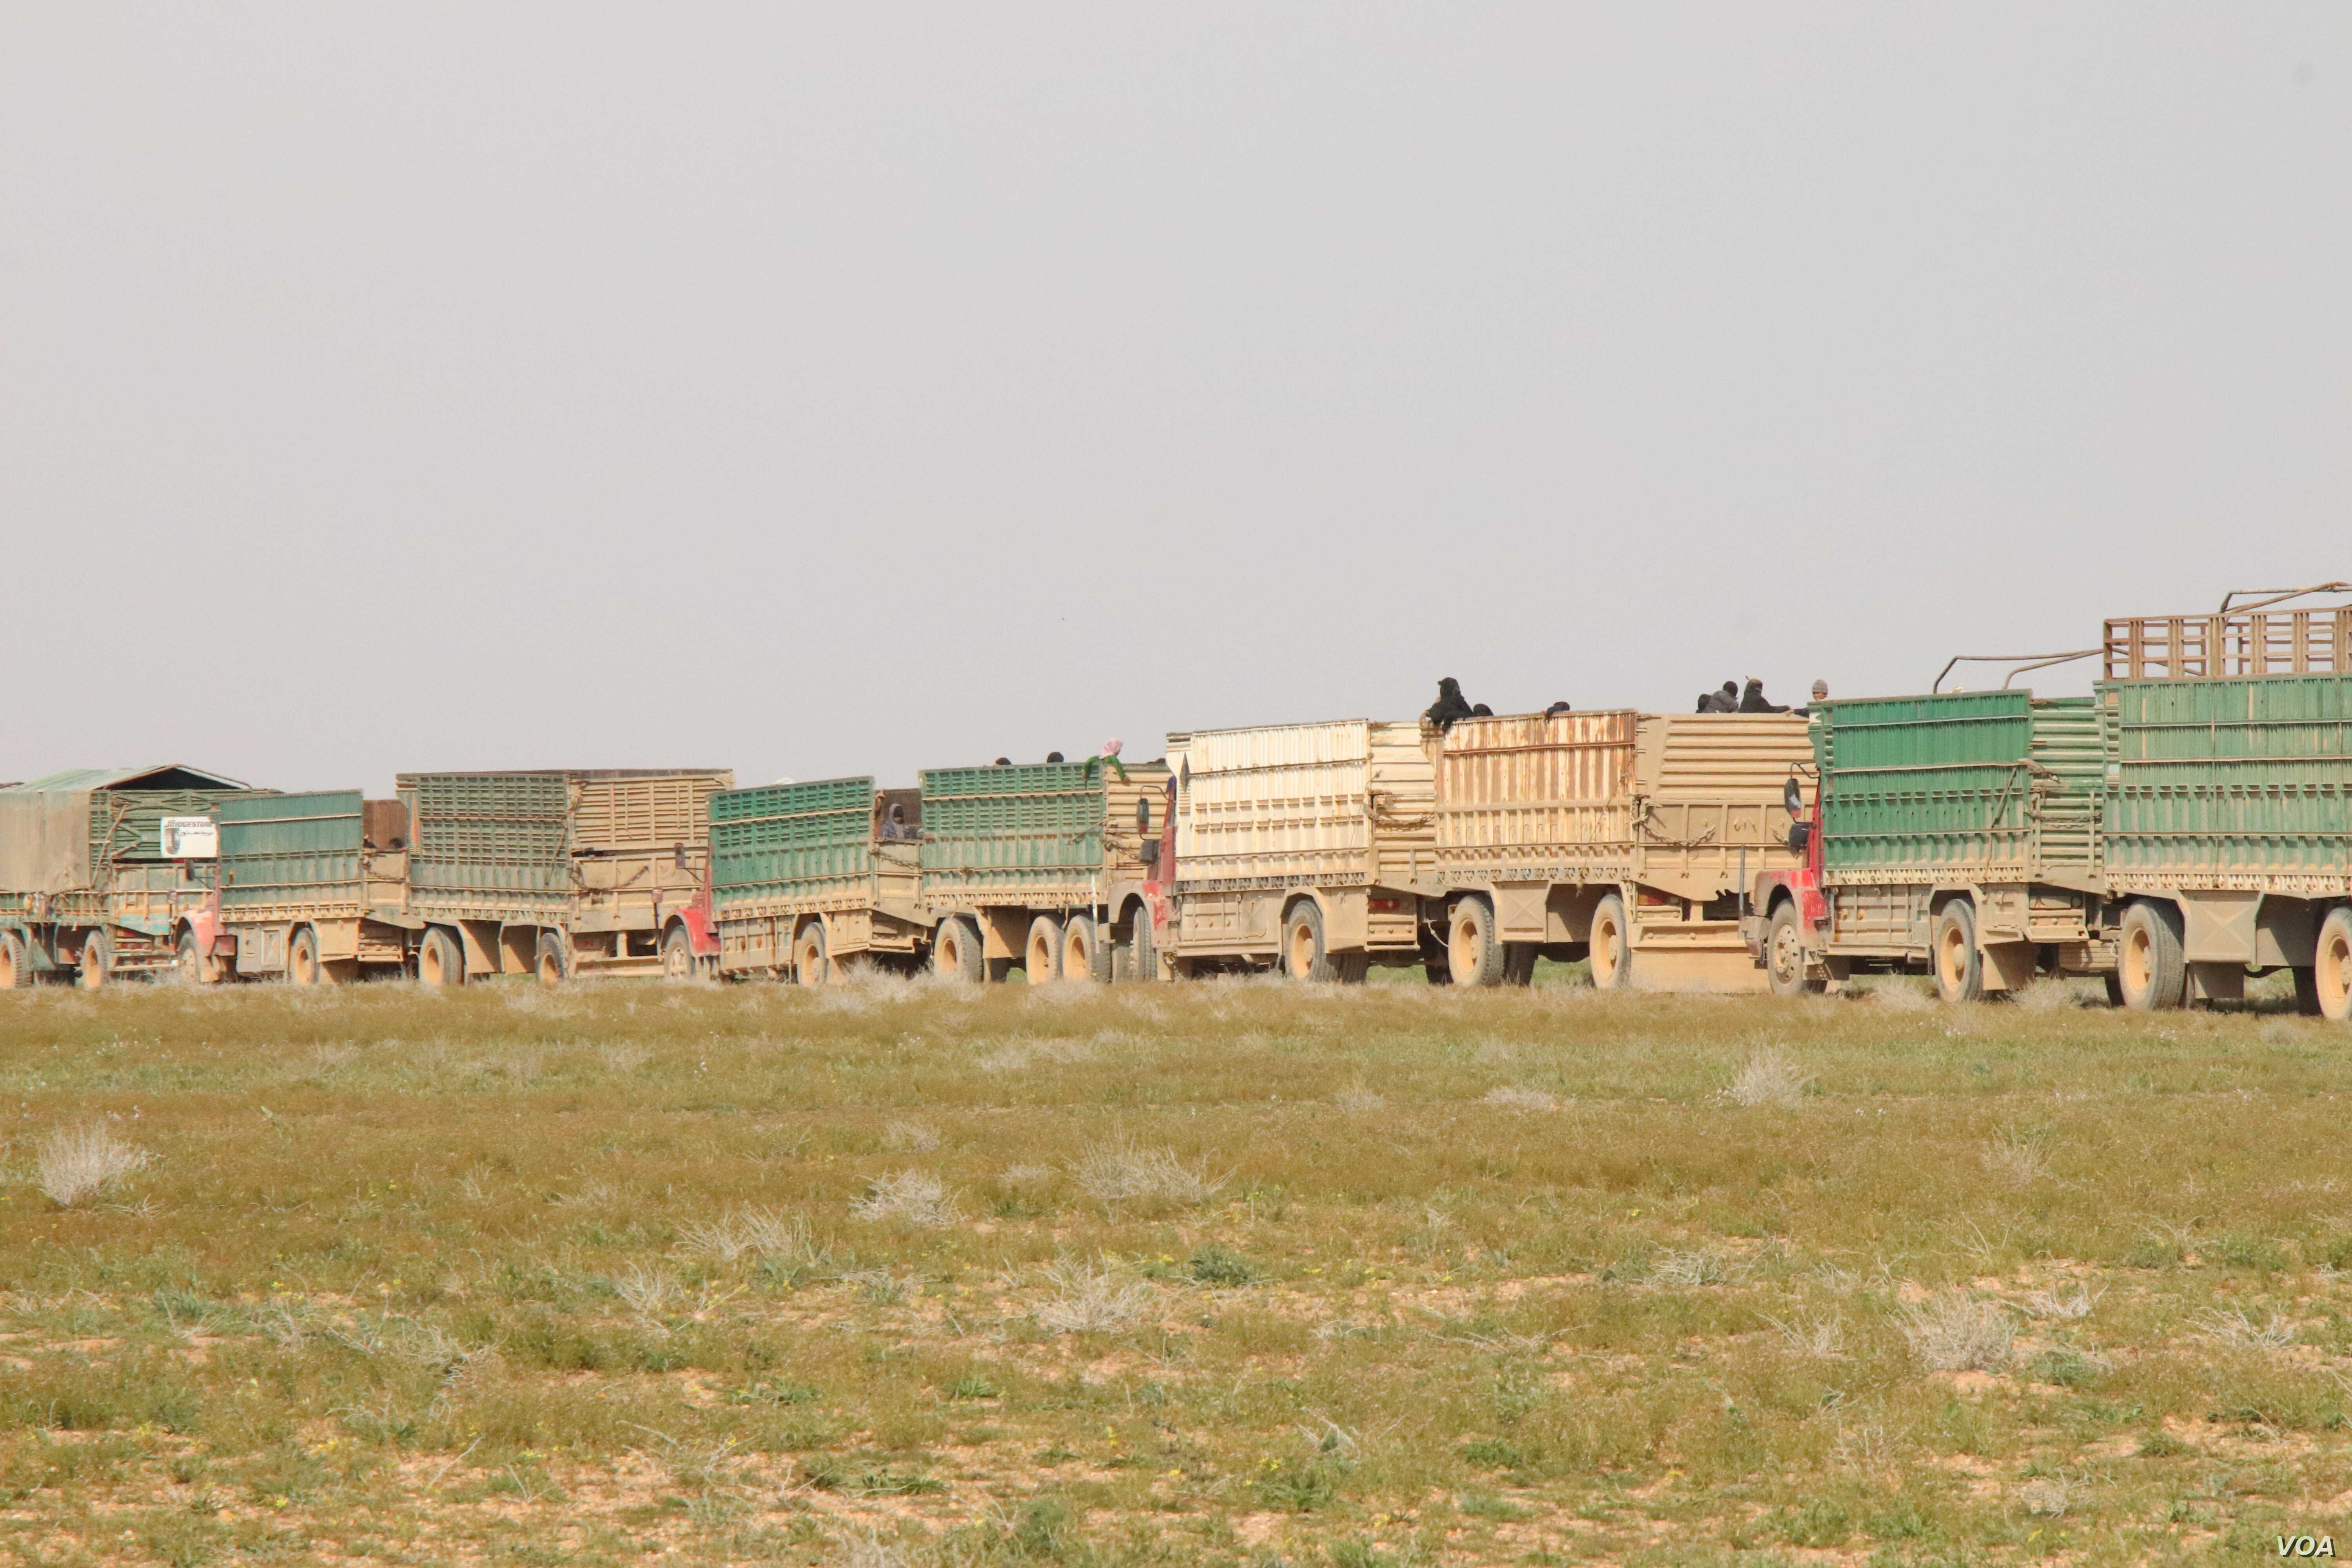 Trucks carry people, sometimes as many as 1,000, daily from the fighting in Baghuz to safer areas as the battles drag on, near Baghuz in Deir el-Zour, Syria, Feb. 26, 2019. (H.Murdock/VOA)